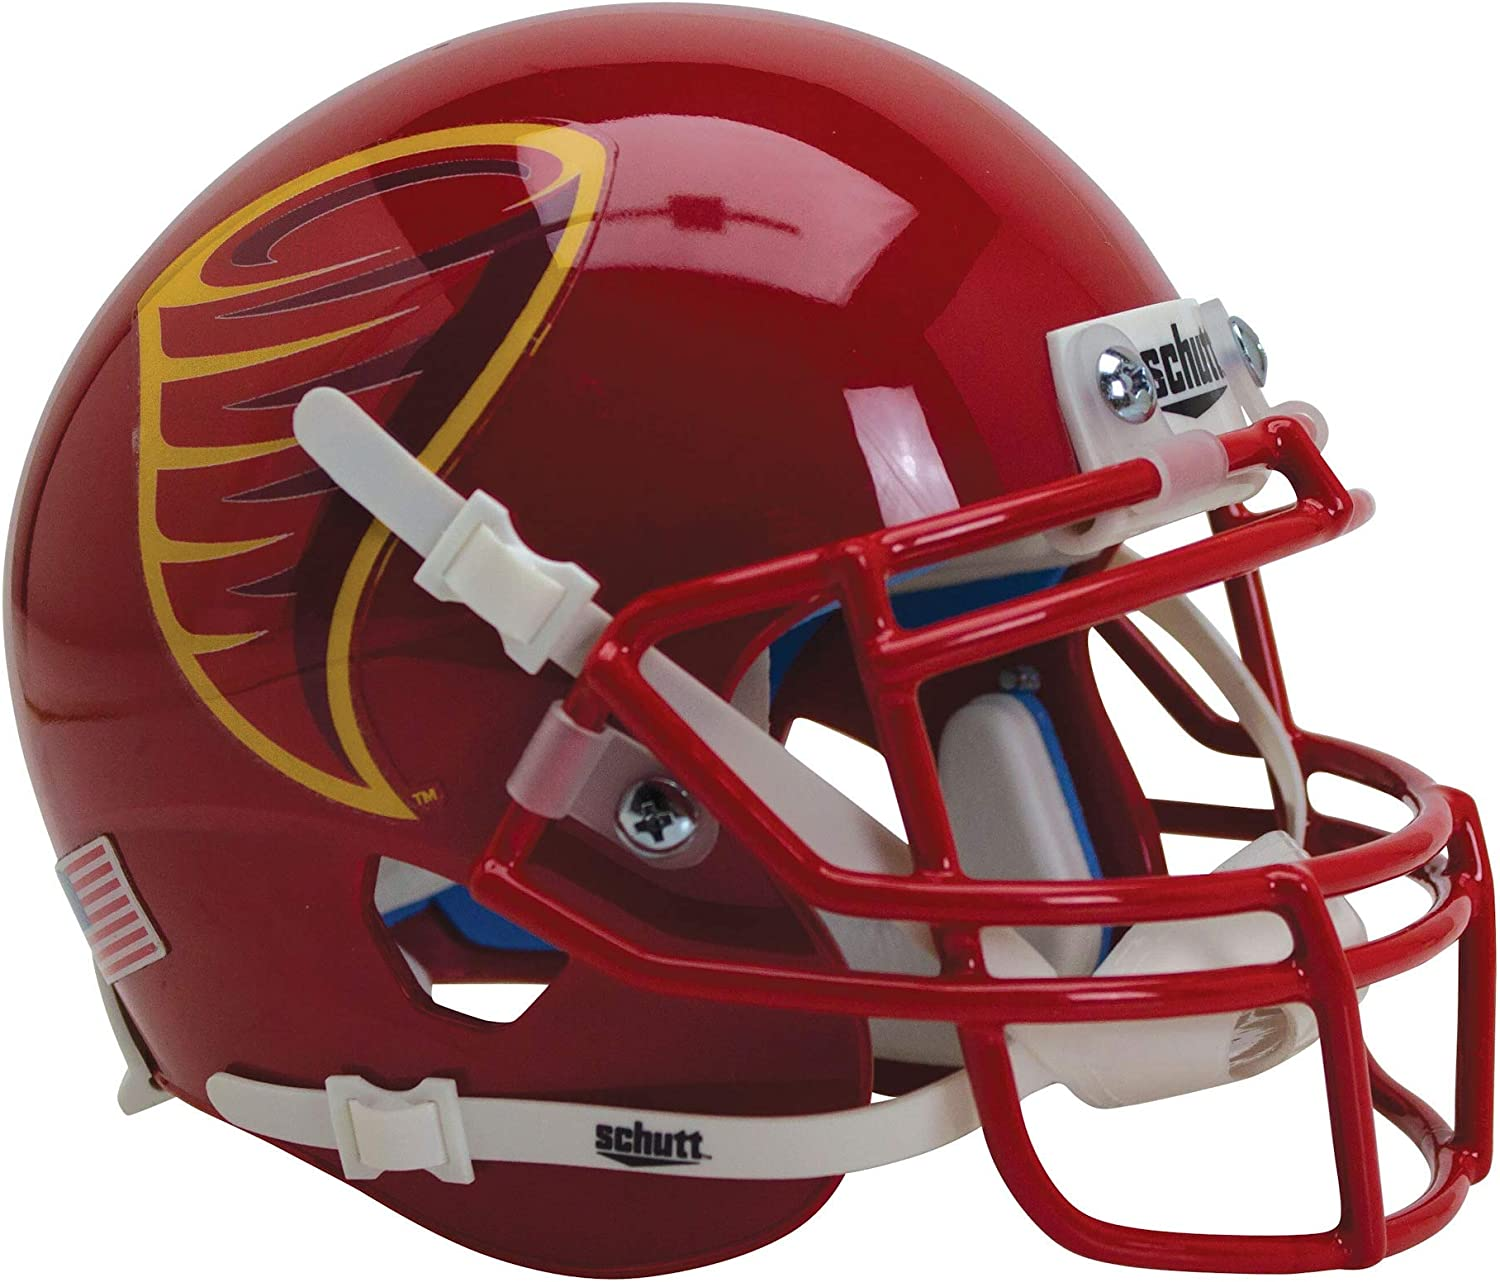 Schutt NCAA Iowa State Cyclones Authentic On-Field 5% OFF Football H Credence XP